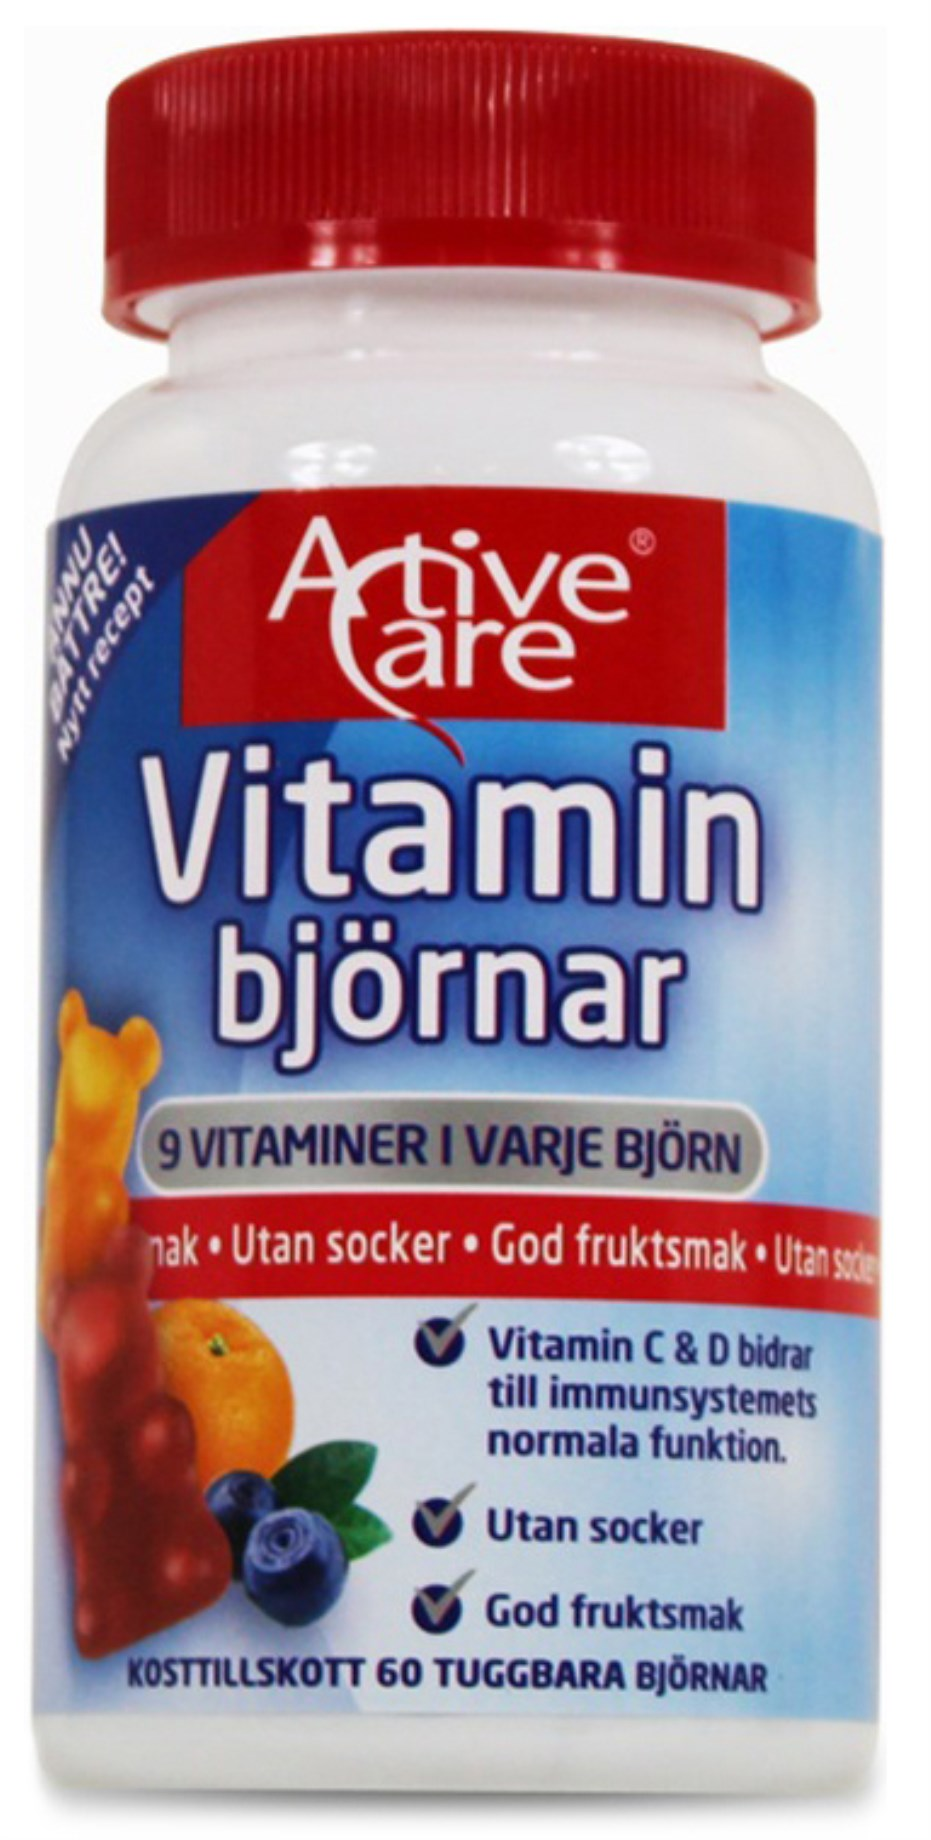 Active Care Vitaminbjörnar,  - Active Care